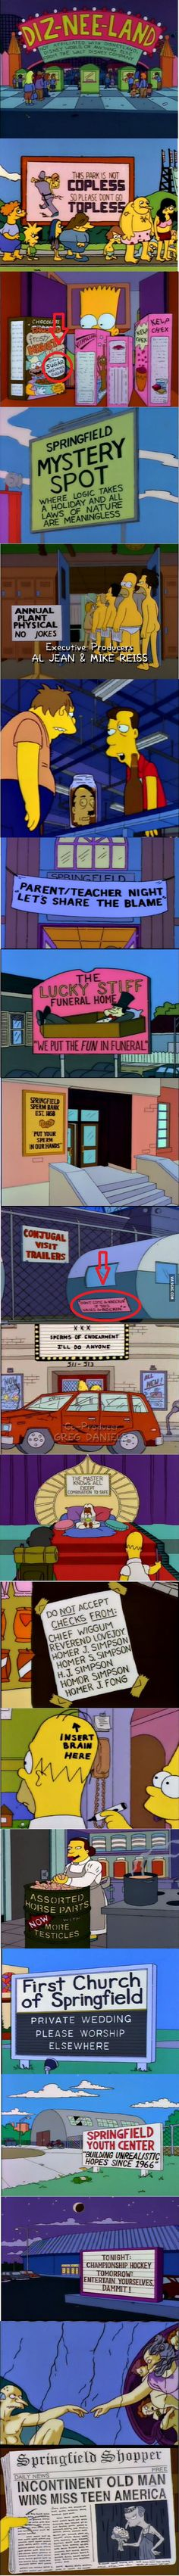 Only in The Simpsons 2 - 9gag